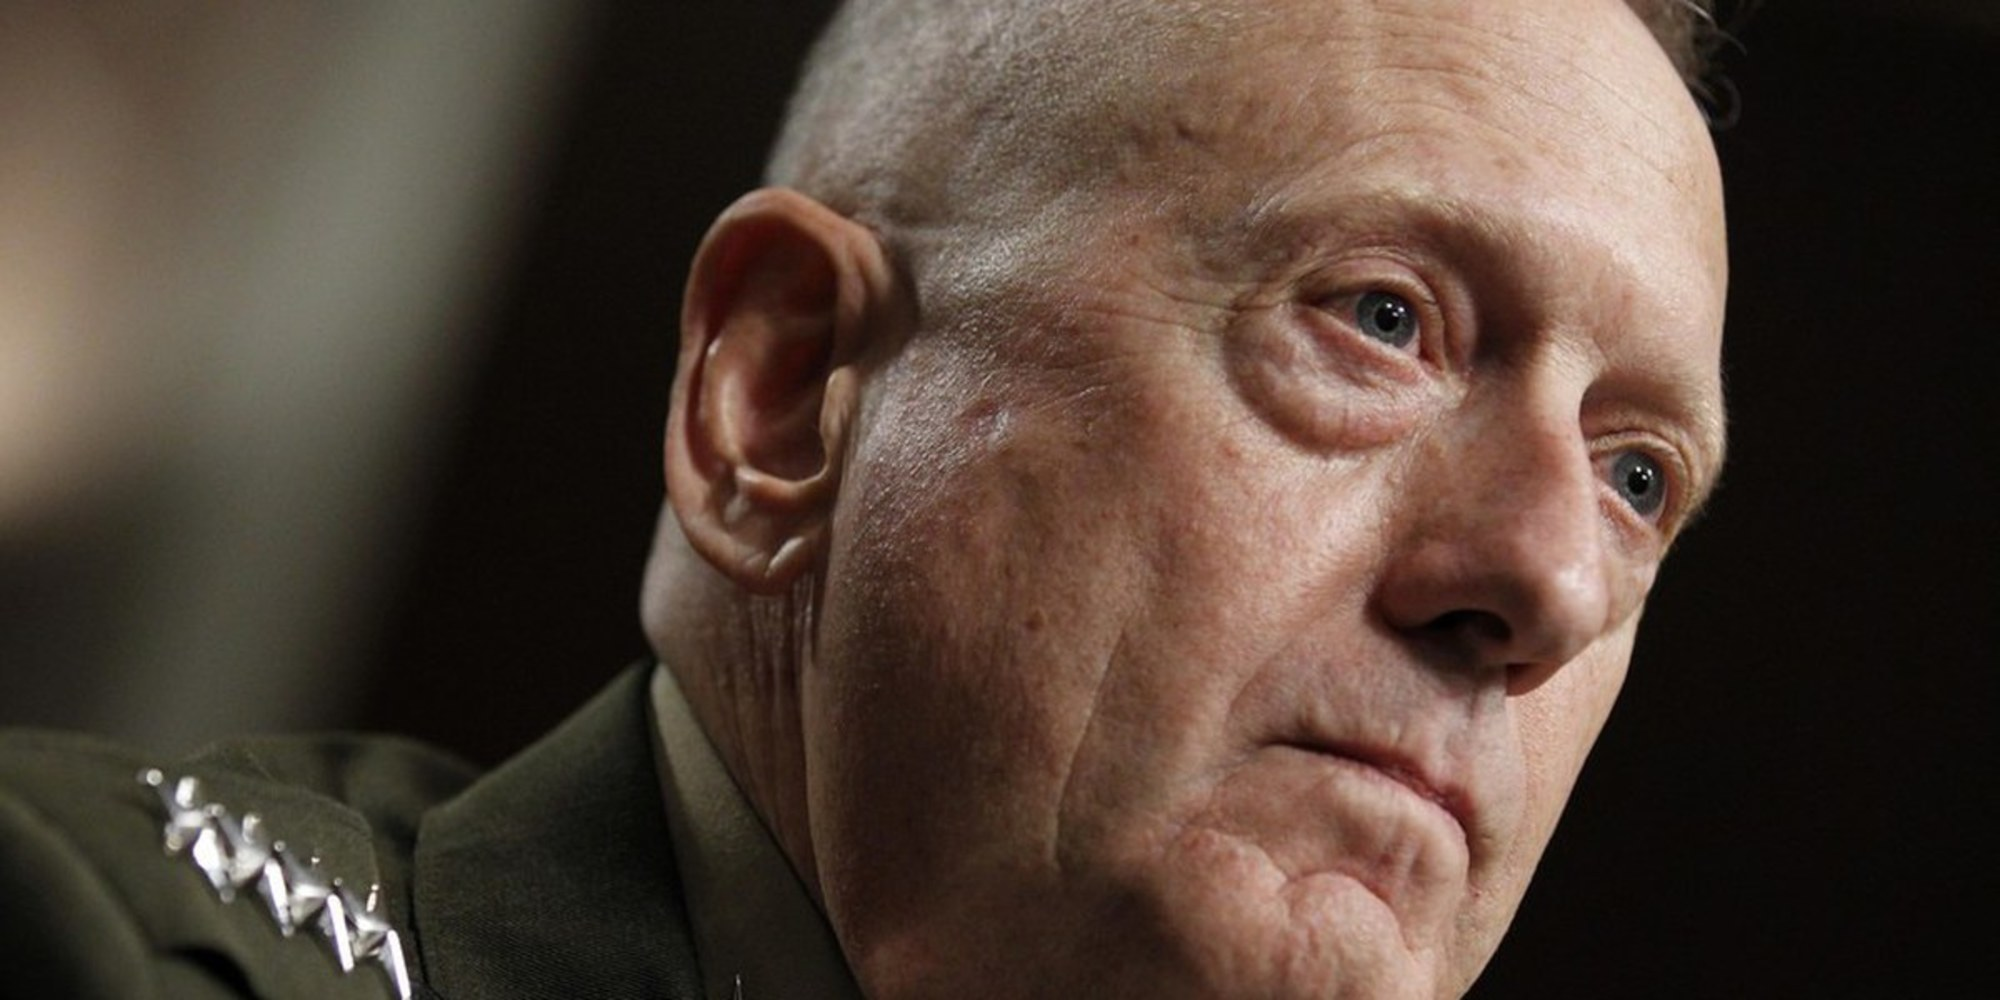 Mattis: Pentagon should leverage artificial intelligence